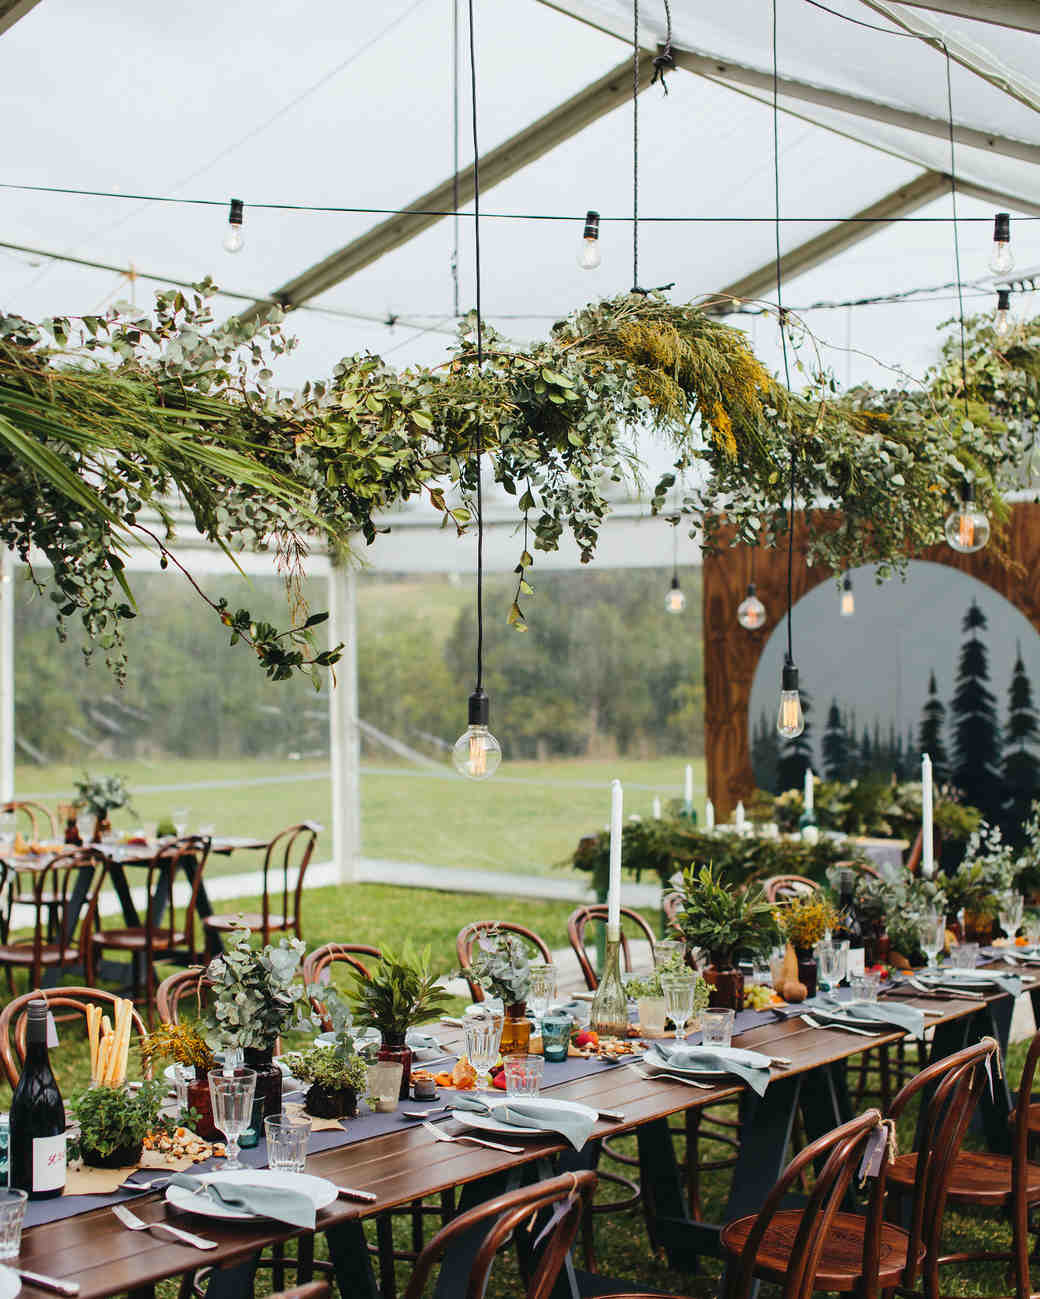 Green Canopy Decor: 28 Tent Decorating Ideas That Will Upgrade Your Wedding